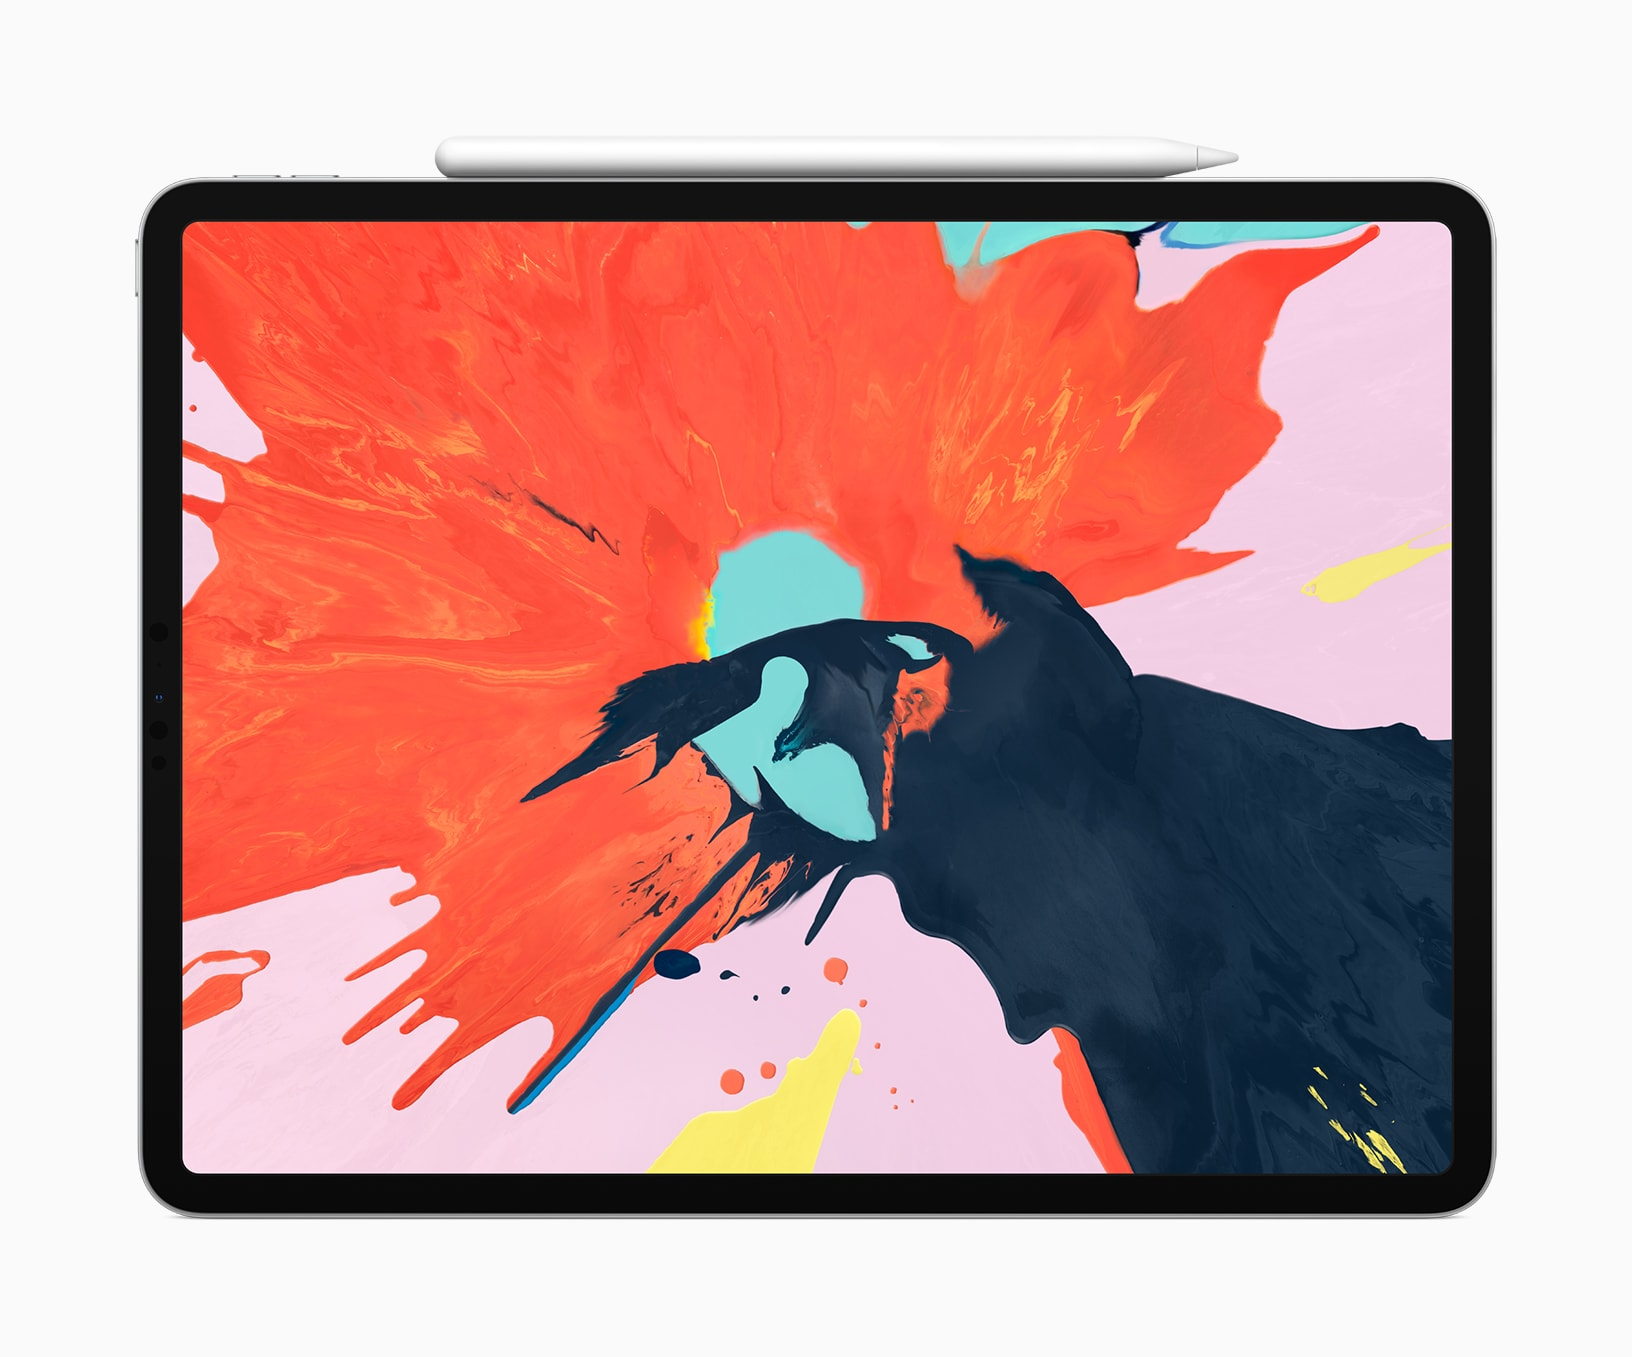 iPad Pro deitado com o Apple Pencil anexado magneticamente a ele